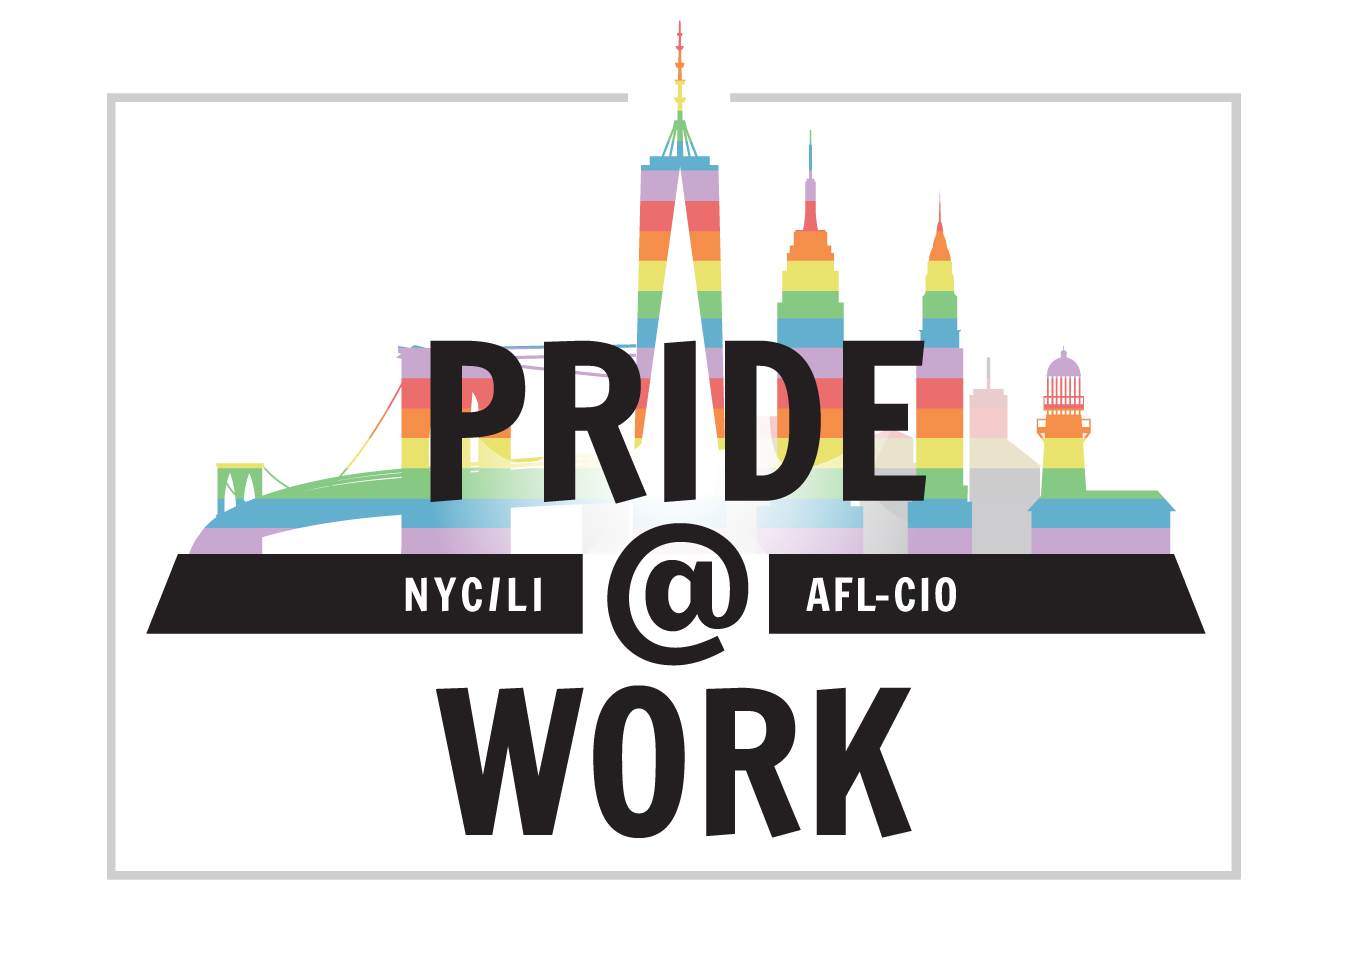 Pride at Work New York City Long Island